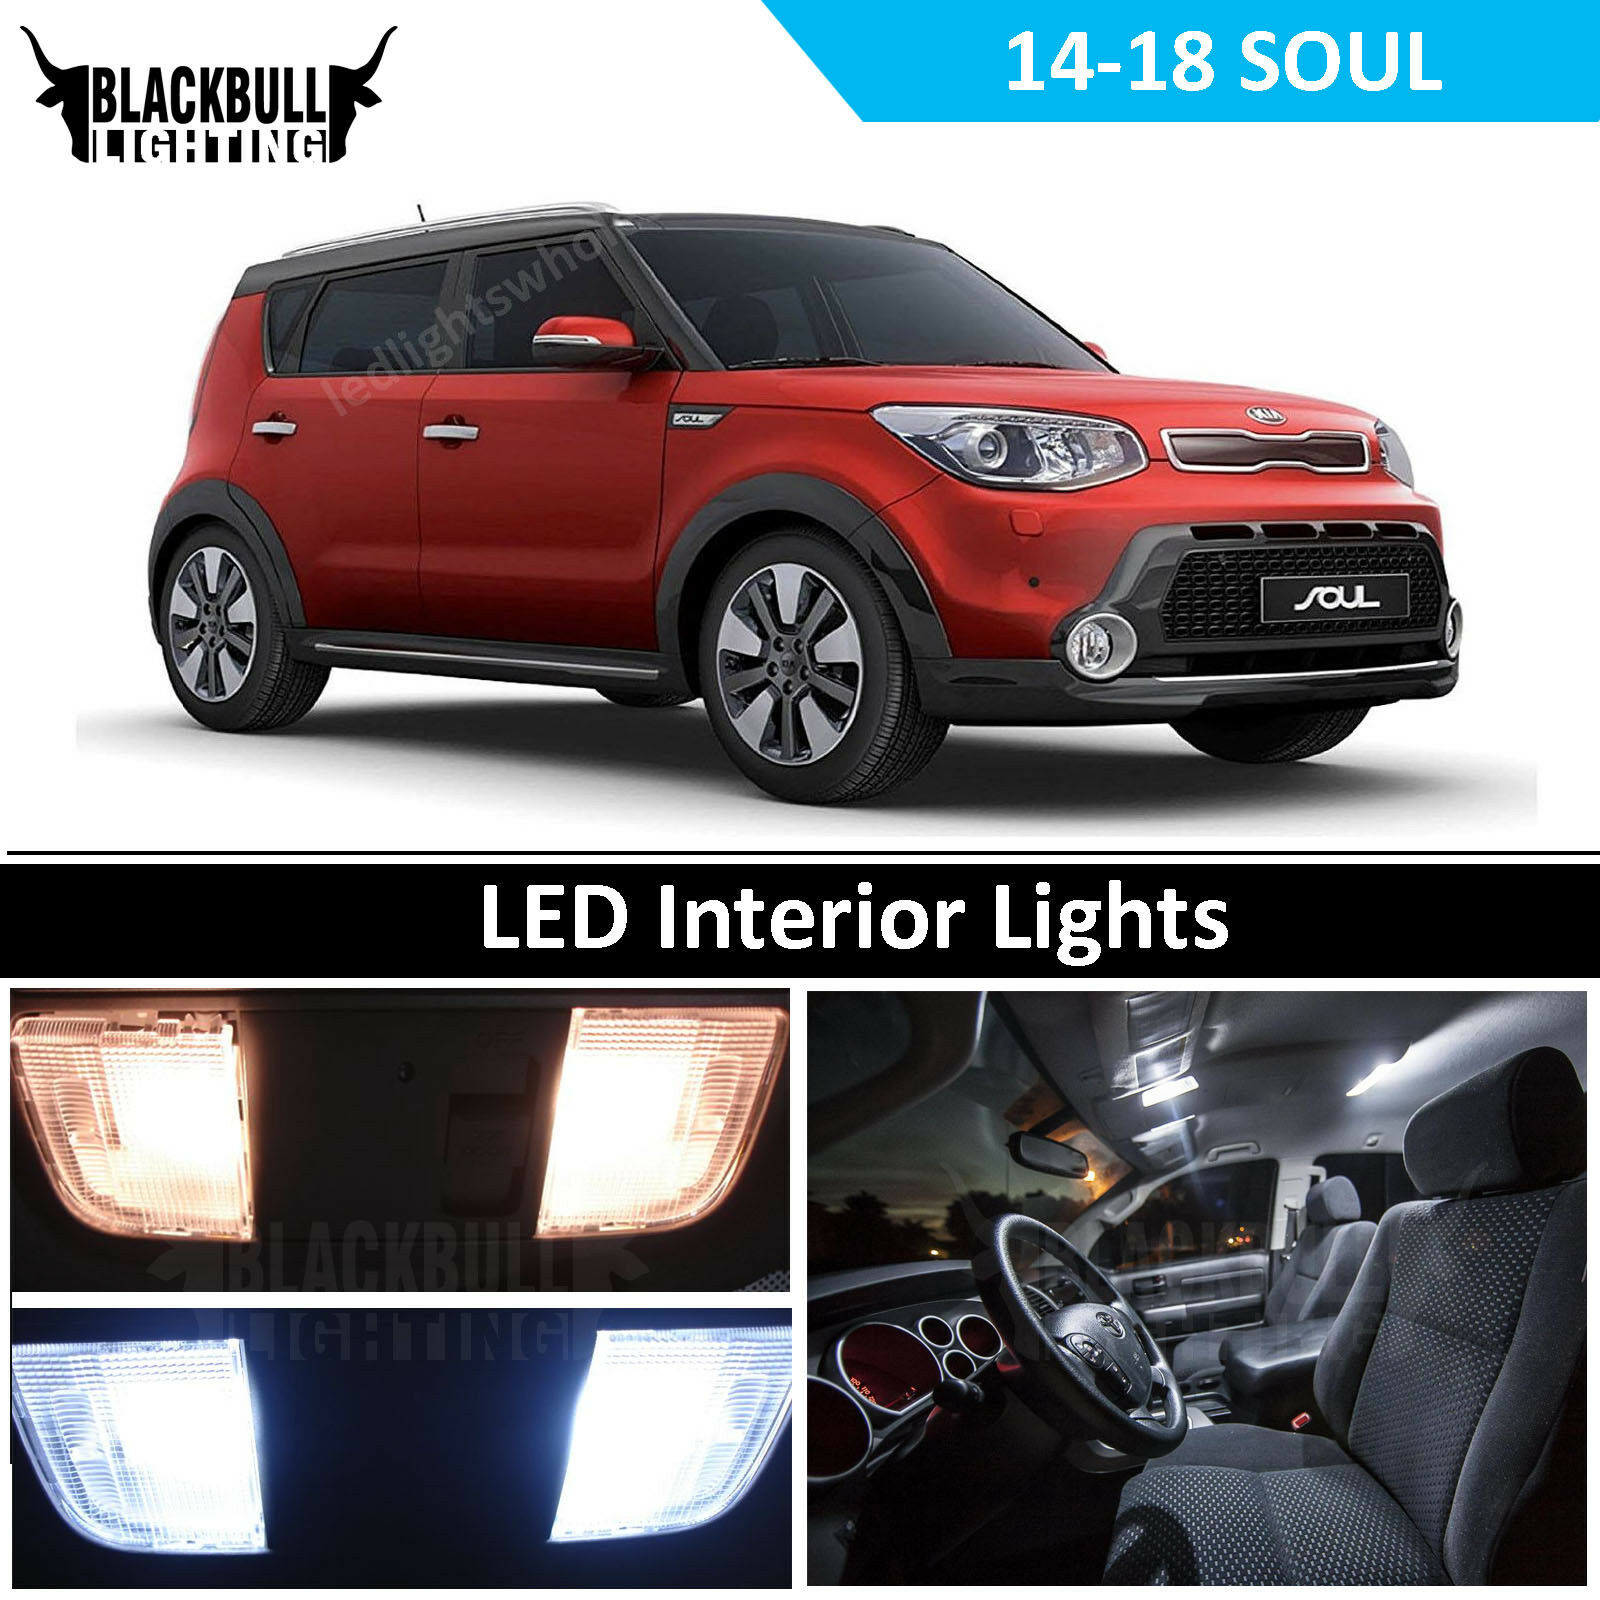 Kia Soul Accessories >> Details About White Led Interior Light Package Accessories Kit Fits 2014 2018 Kia Soul